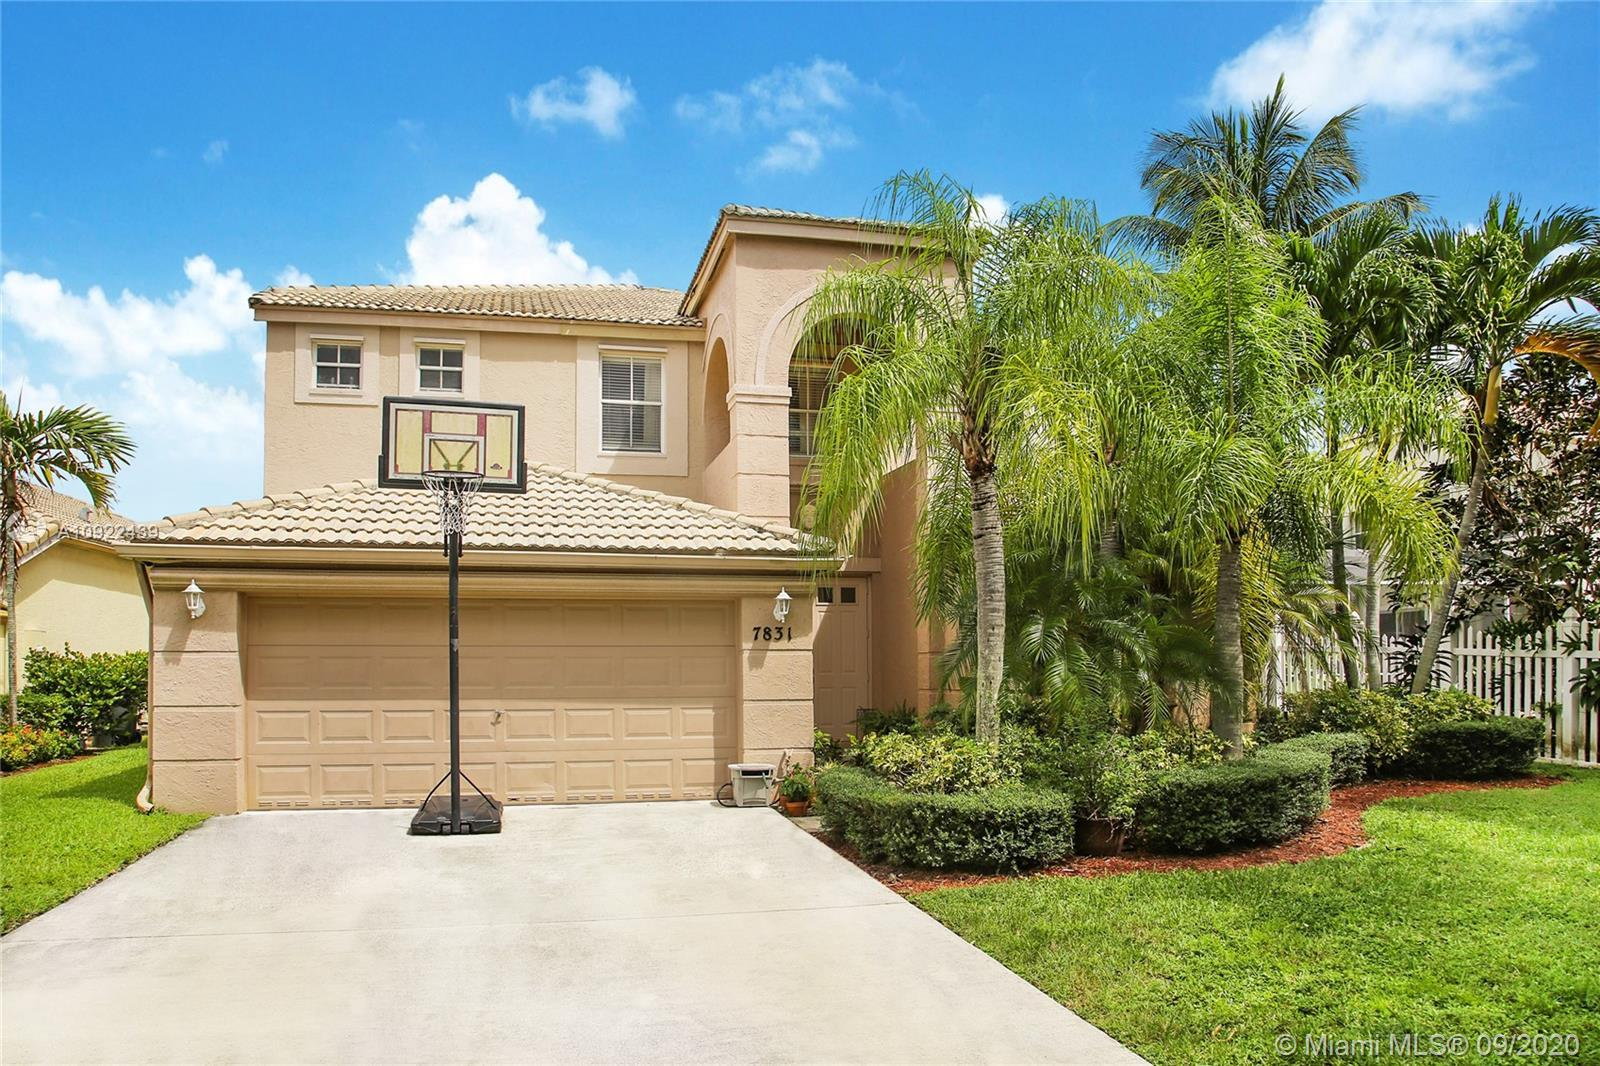 Lovely two story oversized, open floor plan, home with lake views in A rated school district.  Upgra